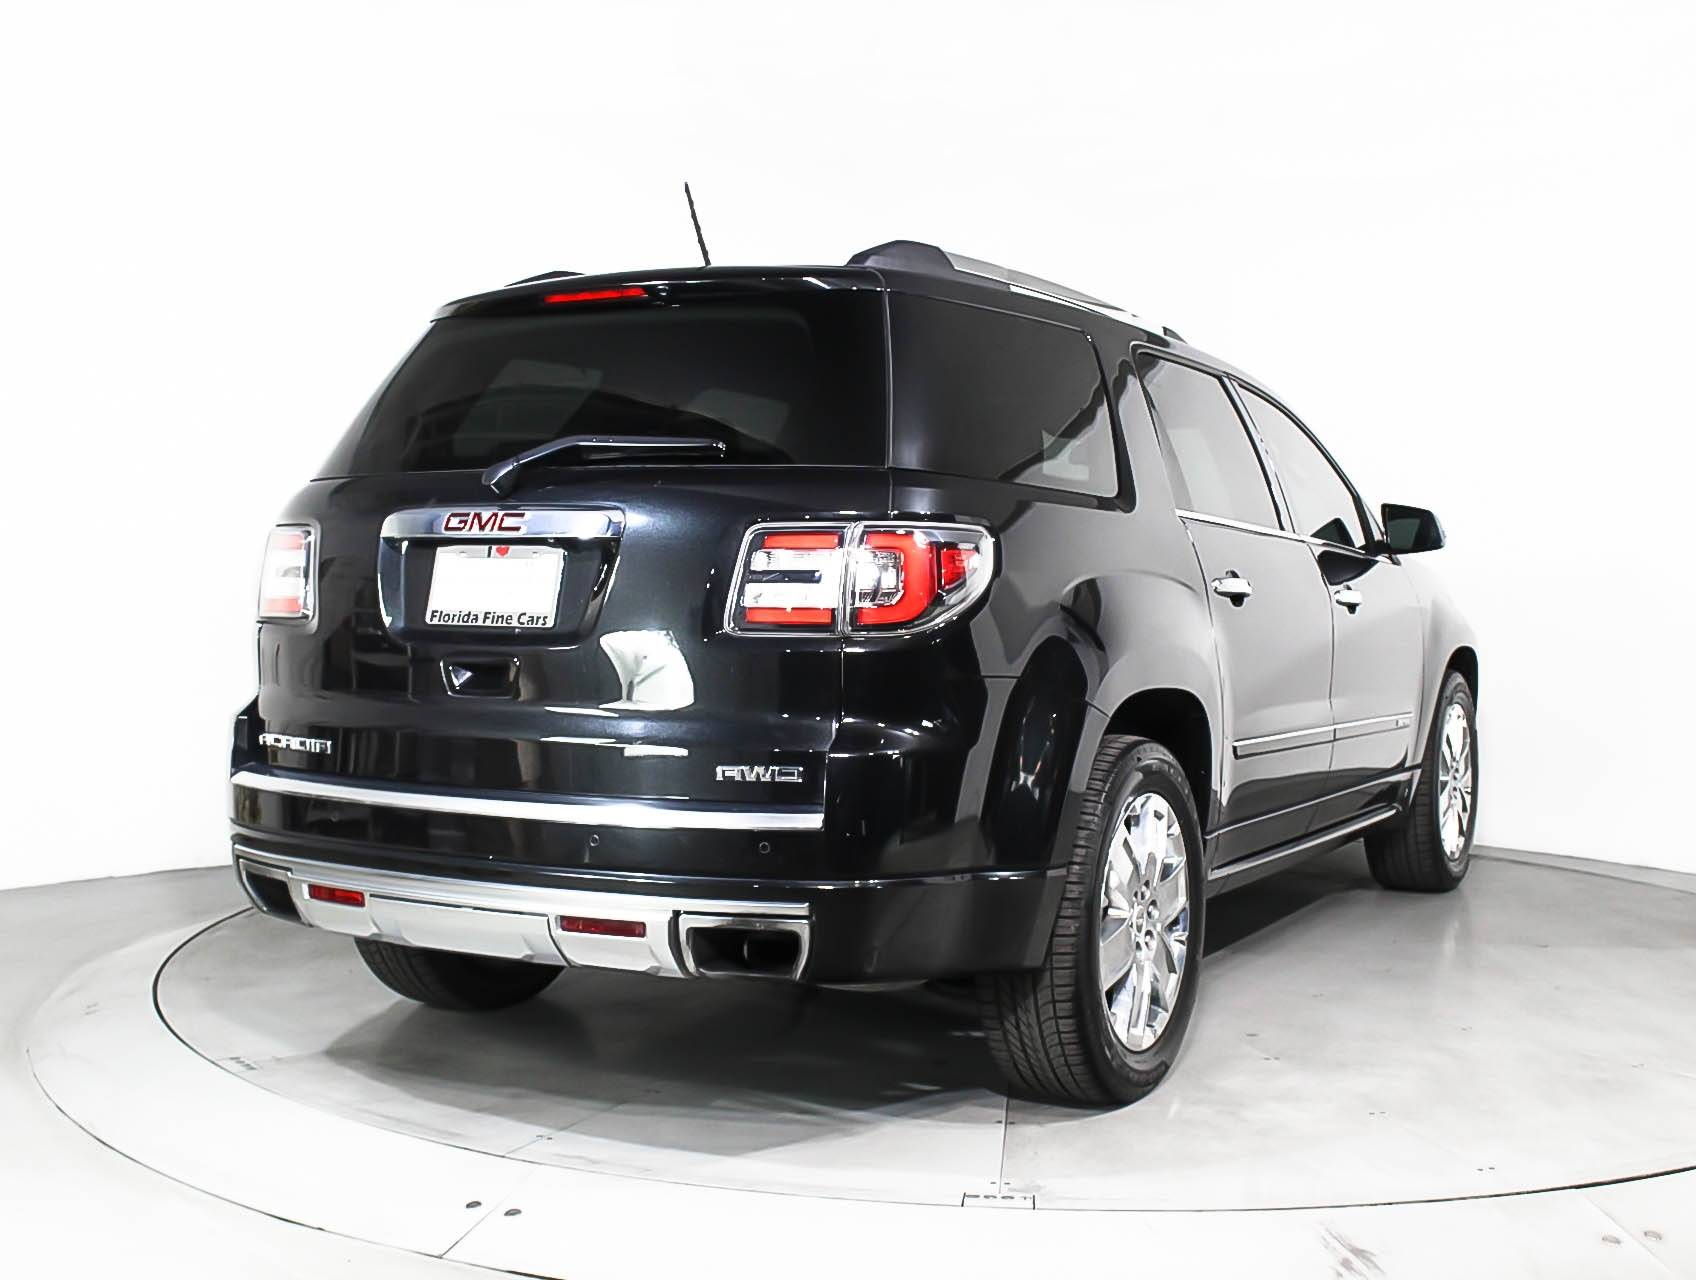 ford weathertech denali gmc bed protection techliner sierra liner tailgate by and